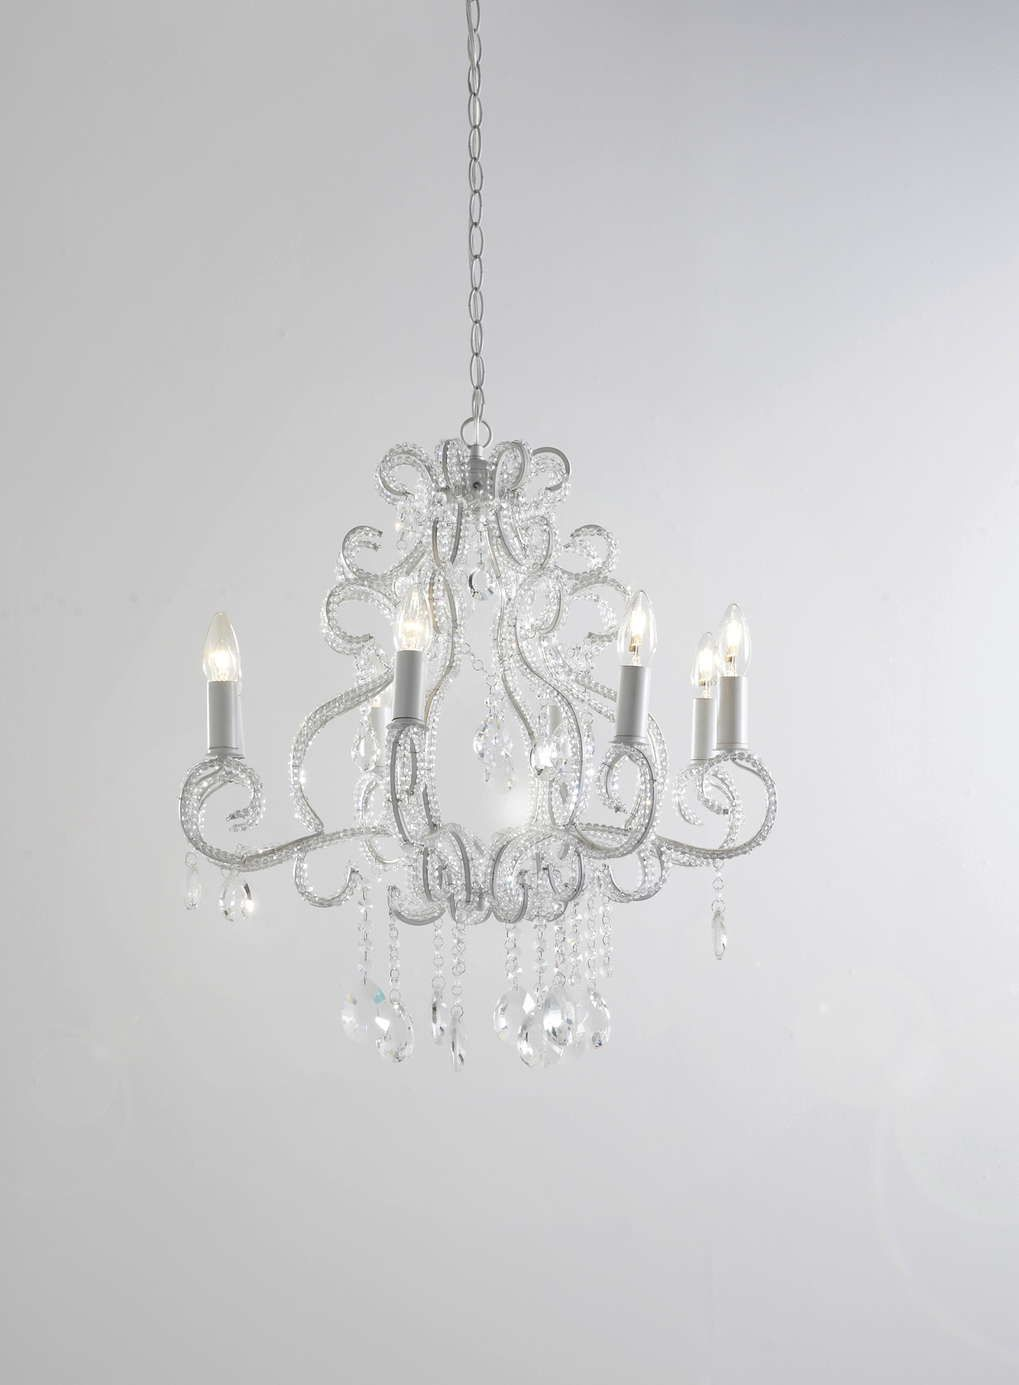 Photo 2 of cinderella chandelier lighting ideas pinterest photo 2 of cinderella chandelier arubaitofo Image collections